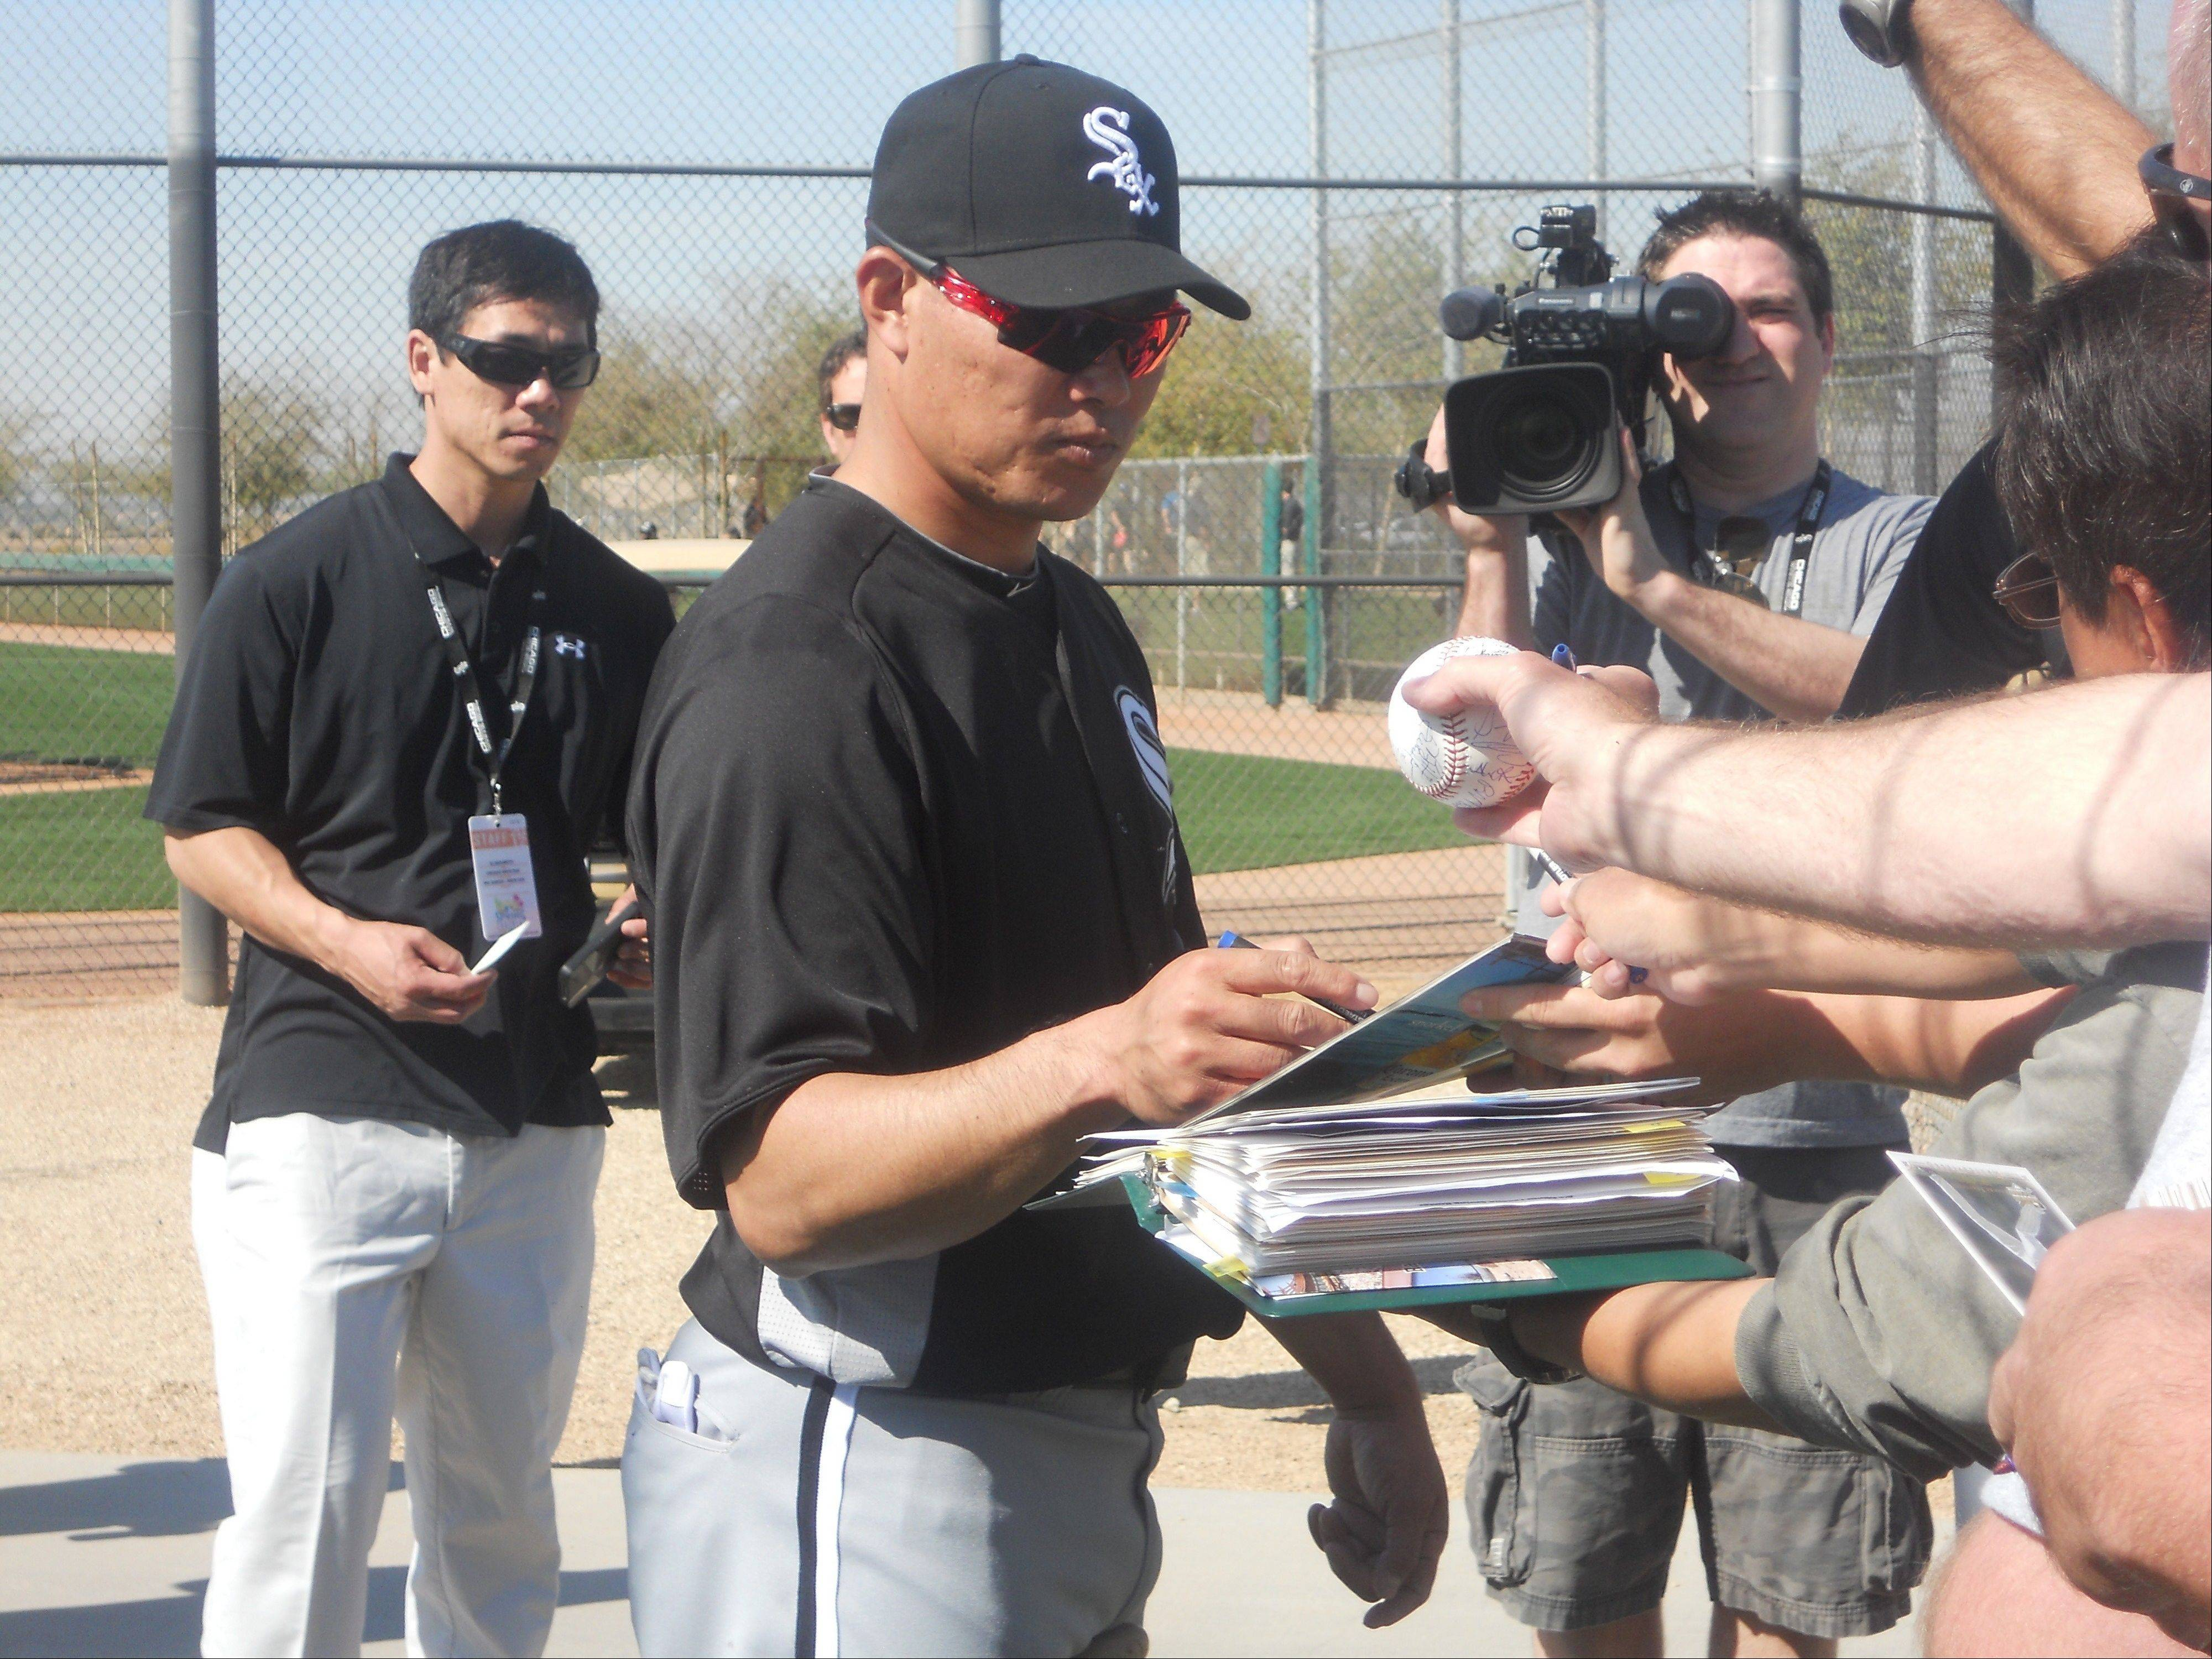 Kosuke Fukudome signs an autograph for a fan Sunday at White Sox camp in Glendale, Ariz. Fukudome gives the Sox a low-risk option in the outfield and is likely just a stopgap as the South Siders wait for one of three prospects to develop.